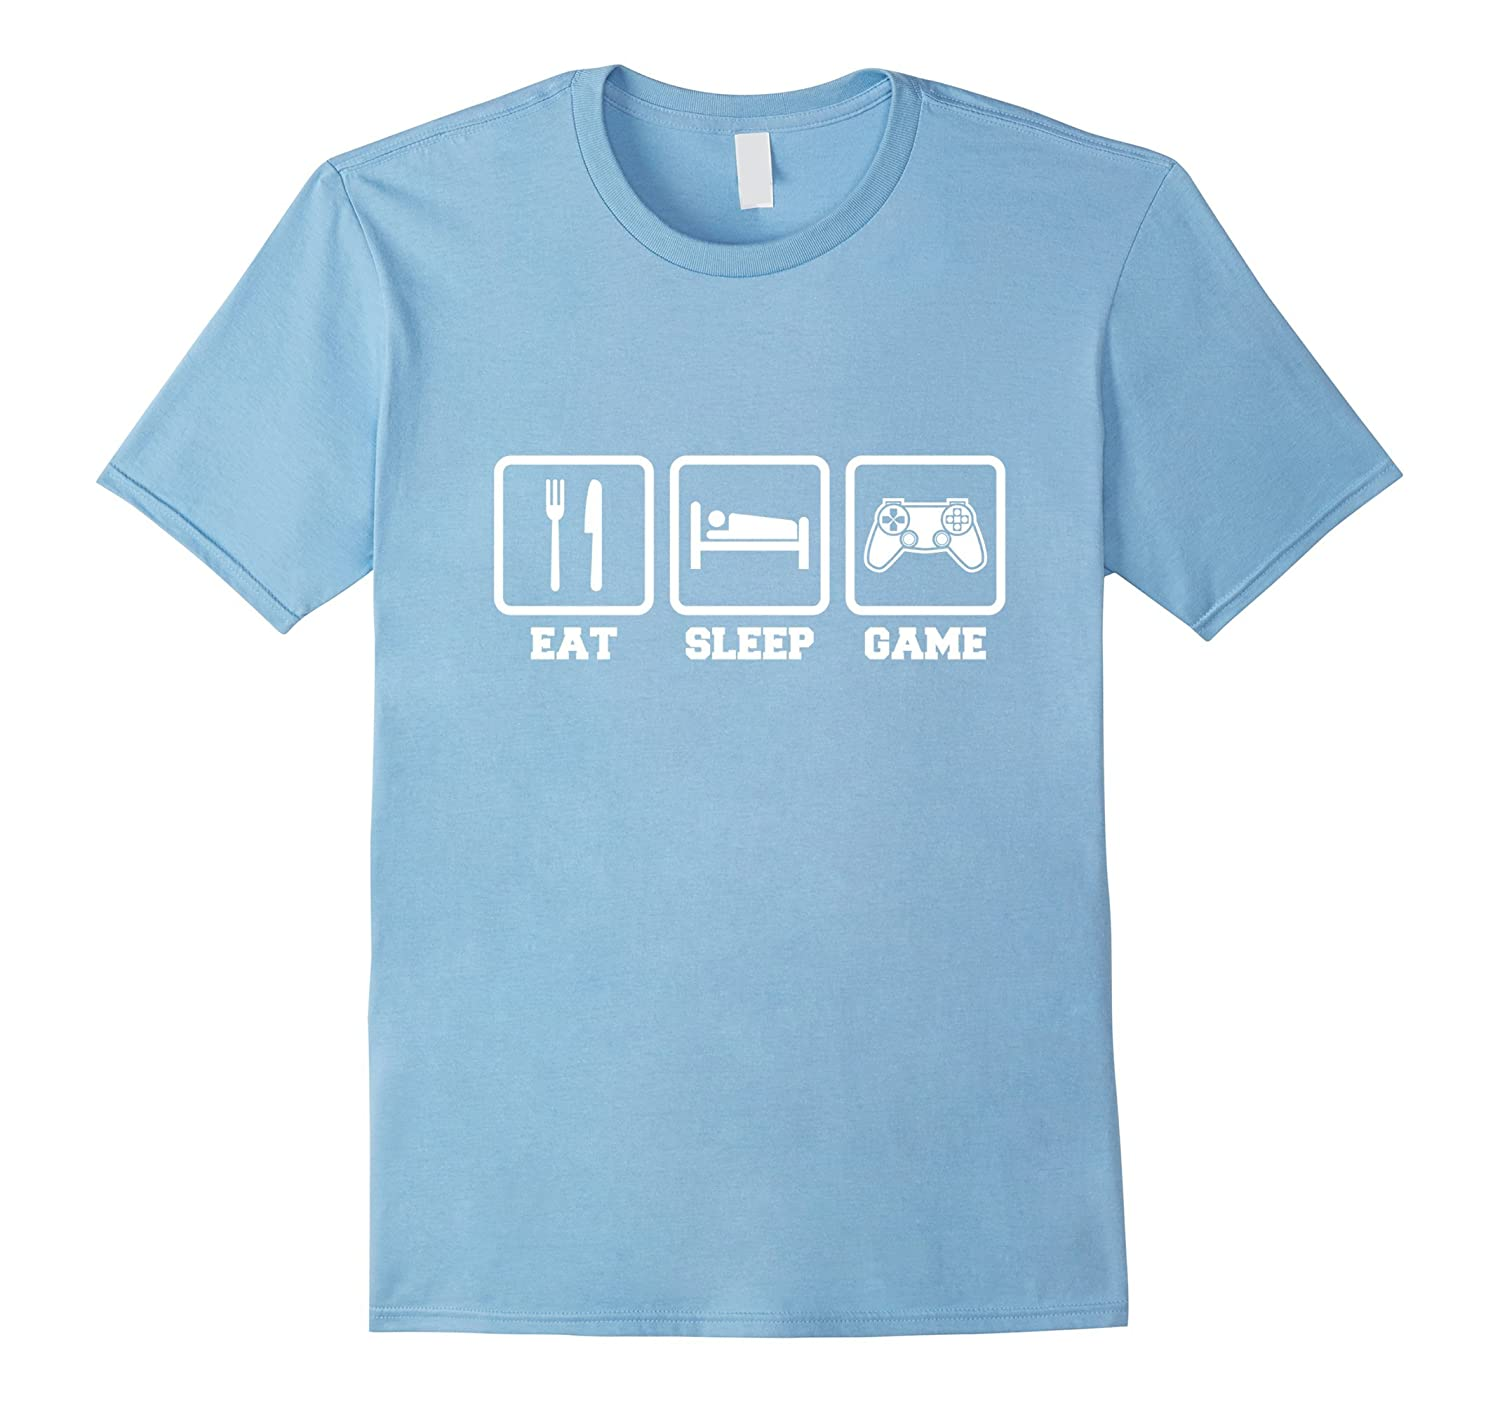 Eat Sleep Game tee  Cool Fun Gamer Geek  Nerd t-shirt-PL